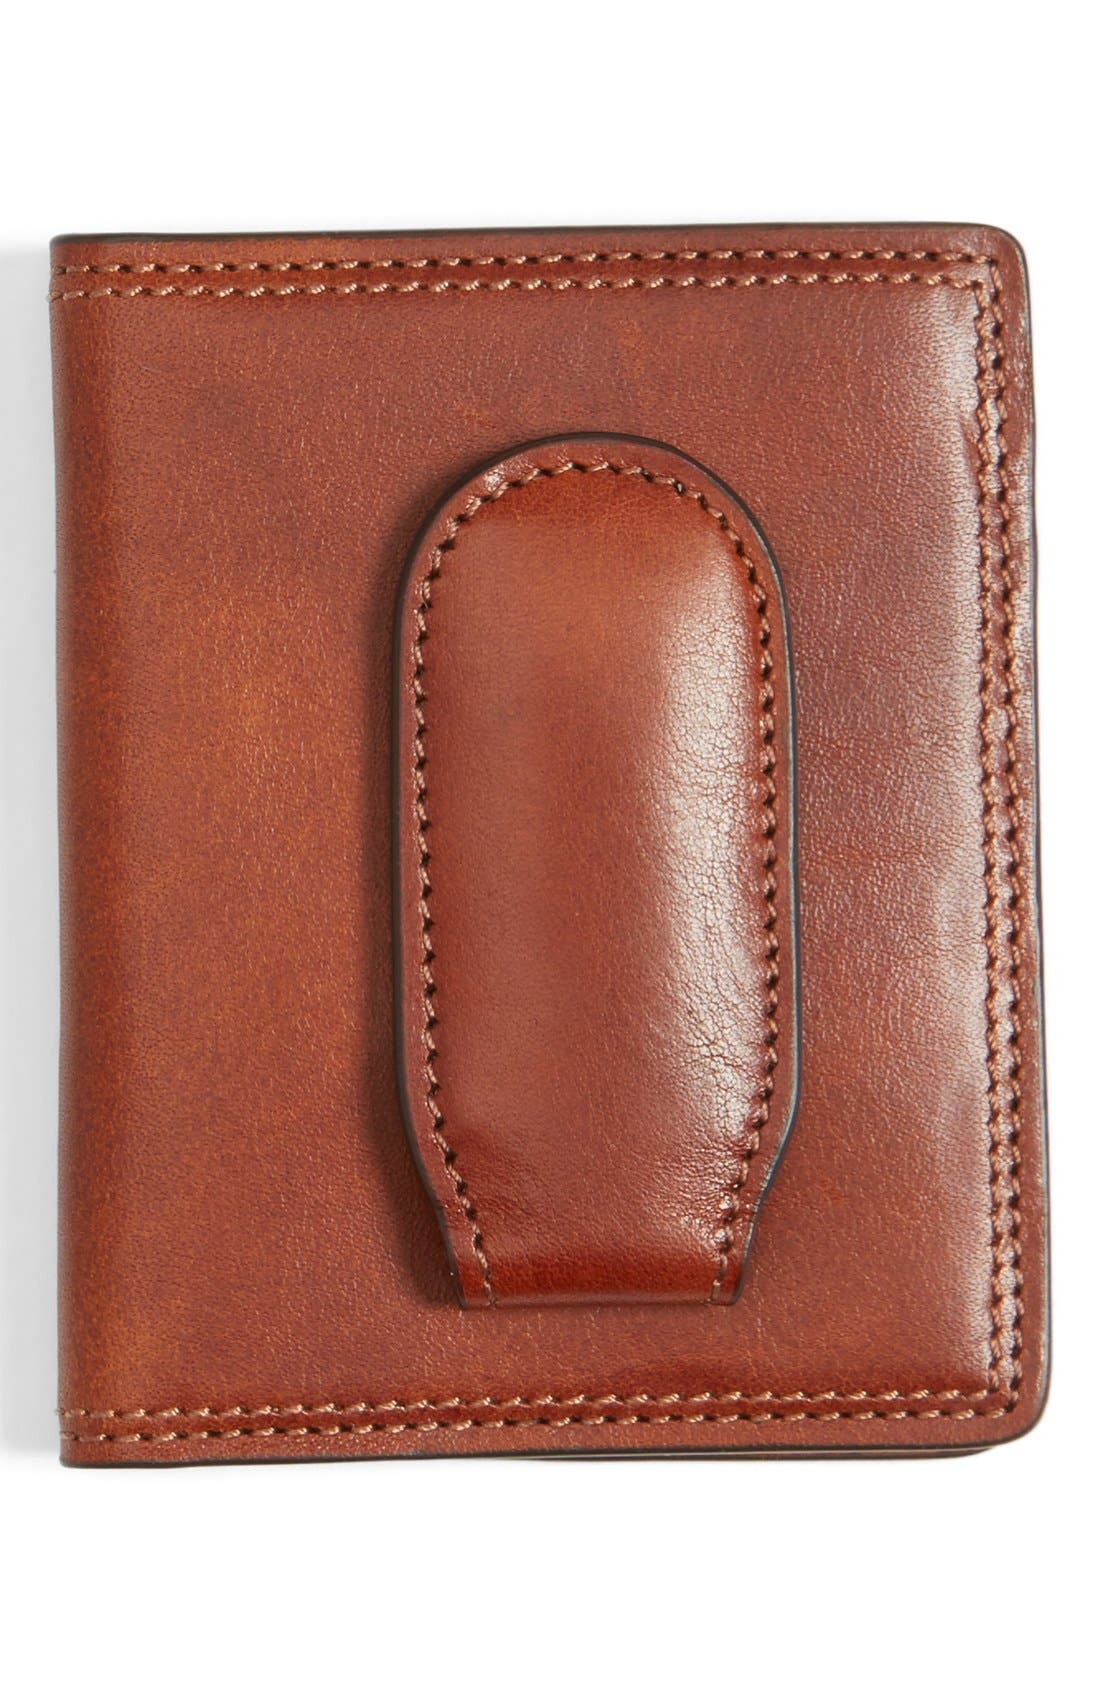 Bosca Leather Front Pocket Money Clip Wallet